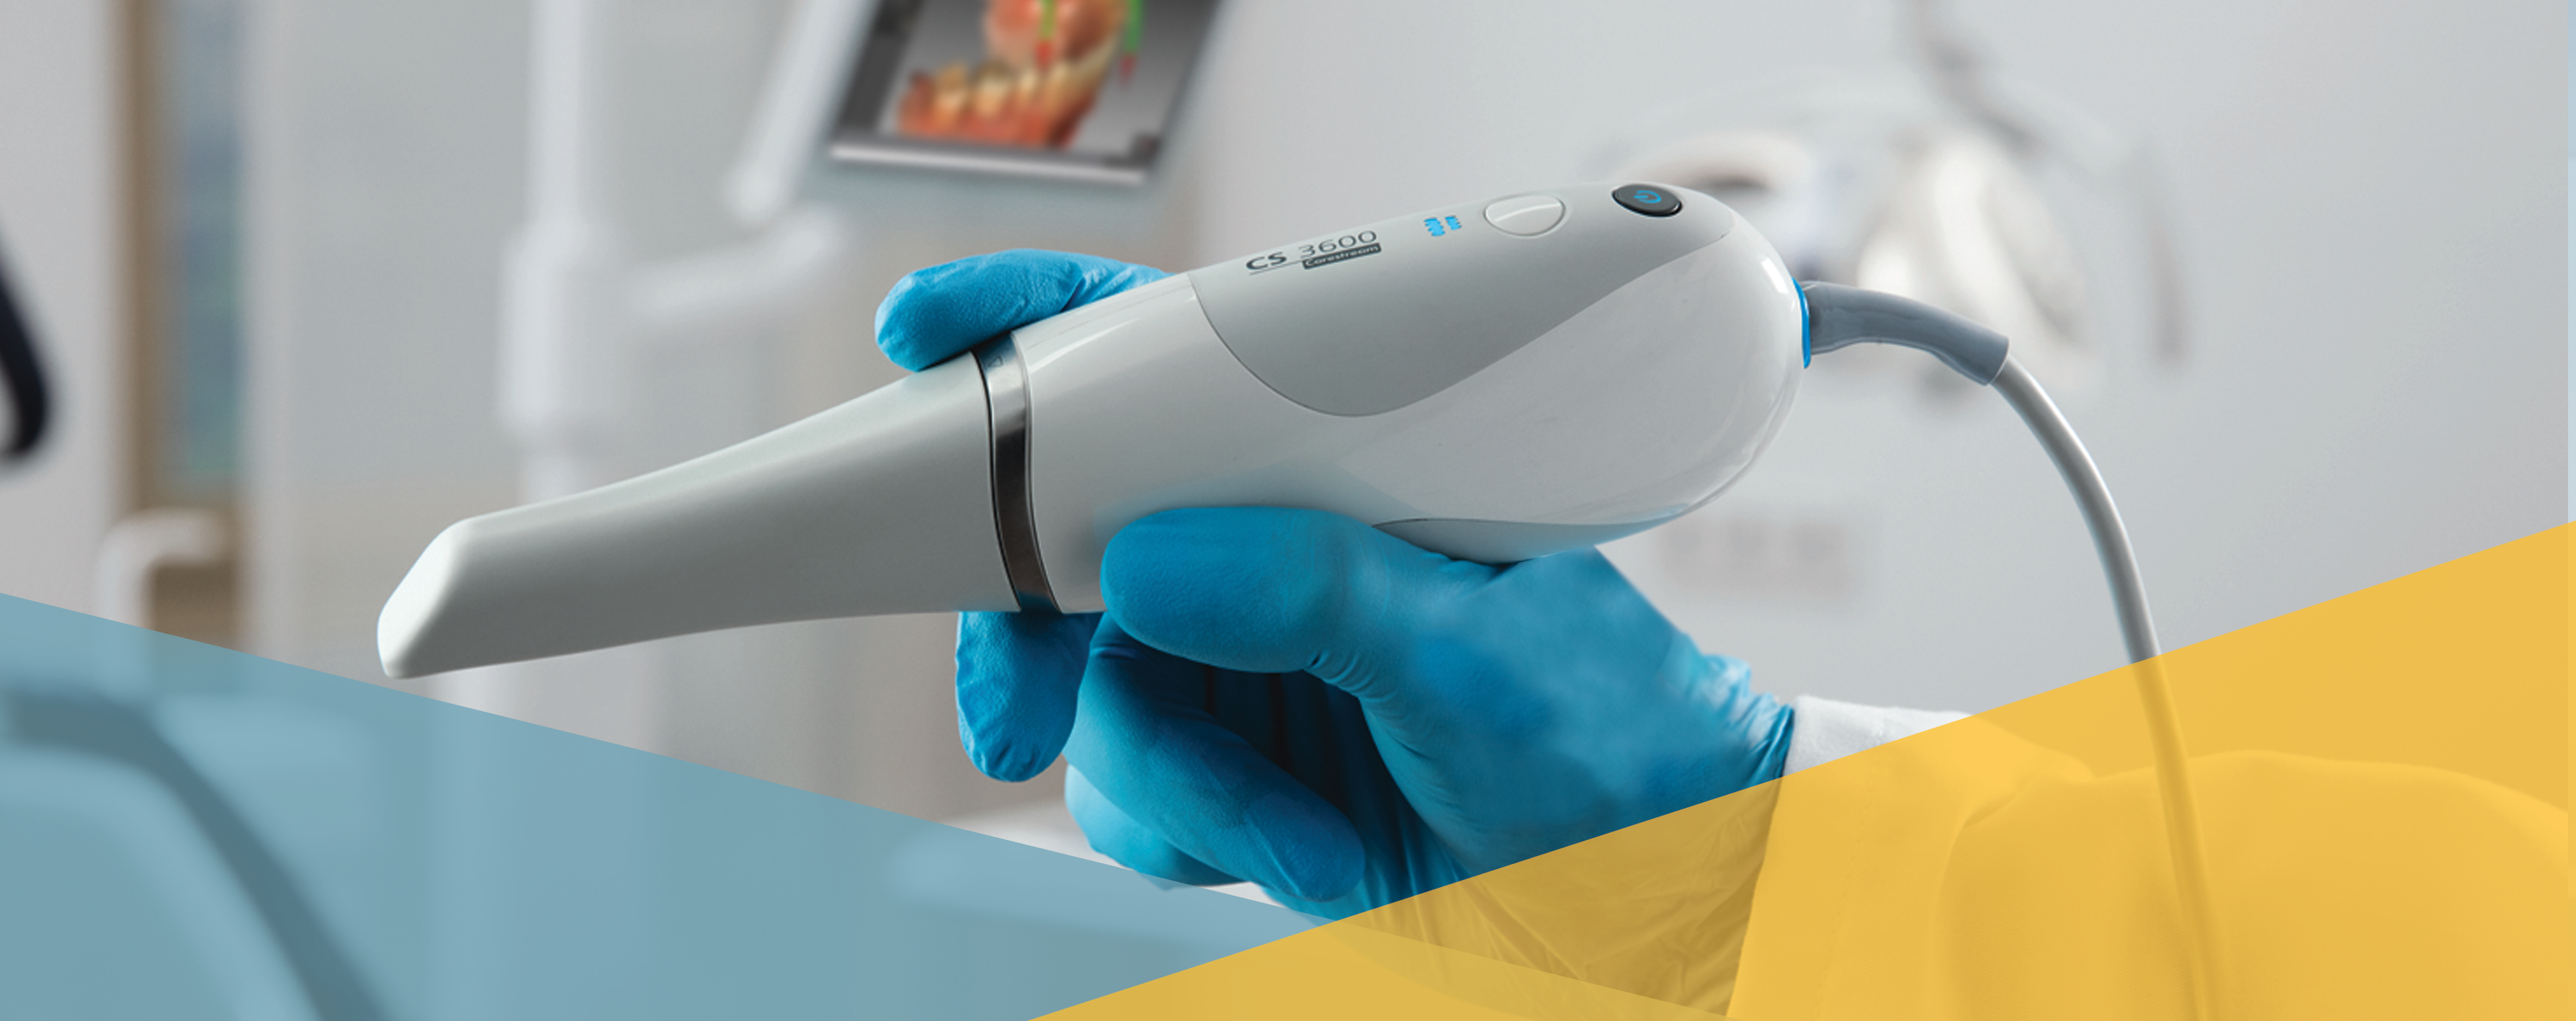 Top 6 Intraoral Scanner Attributes That Matter Most to You